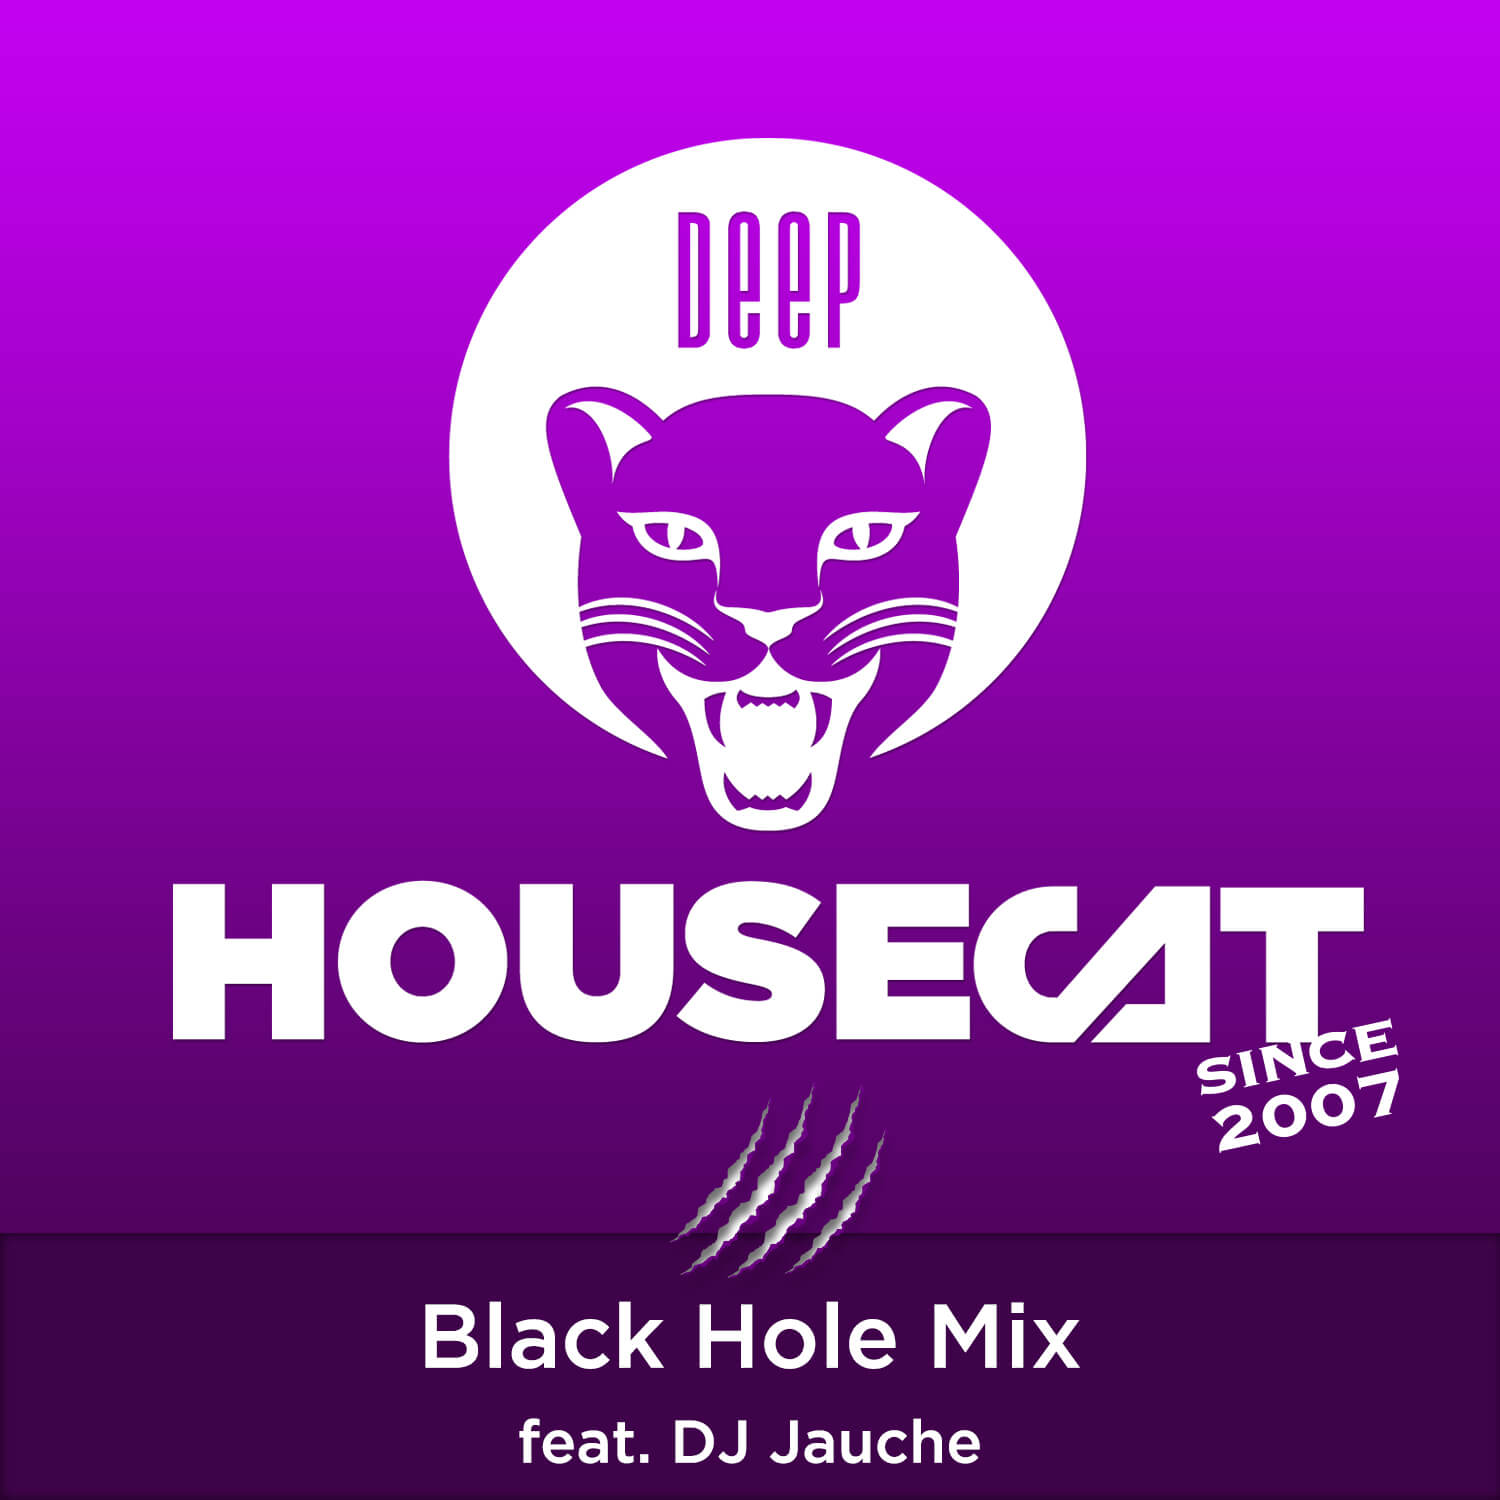 Black Hole Mix - feat. DJ Jauche